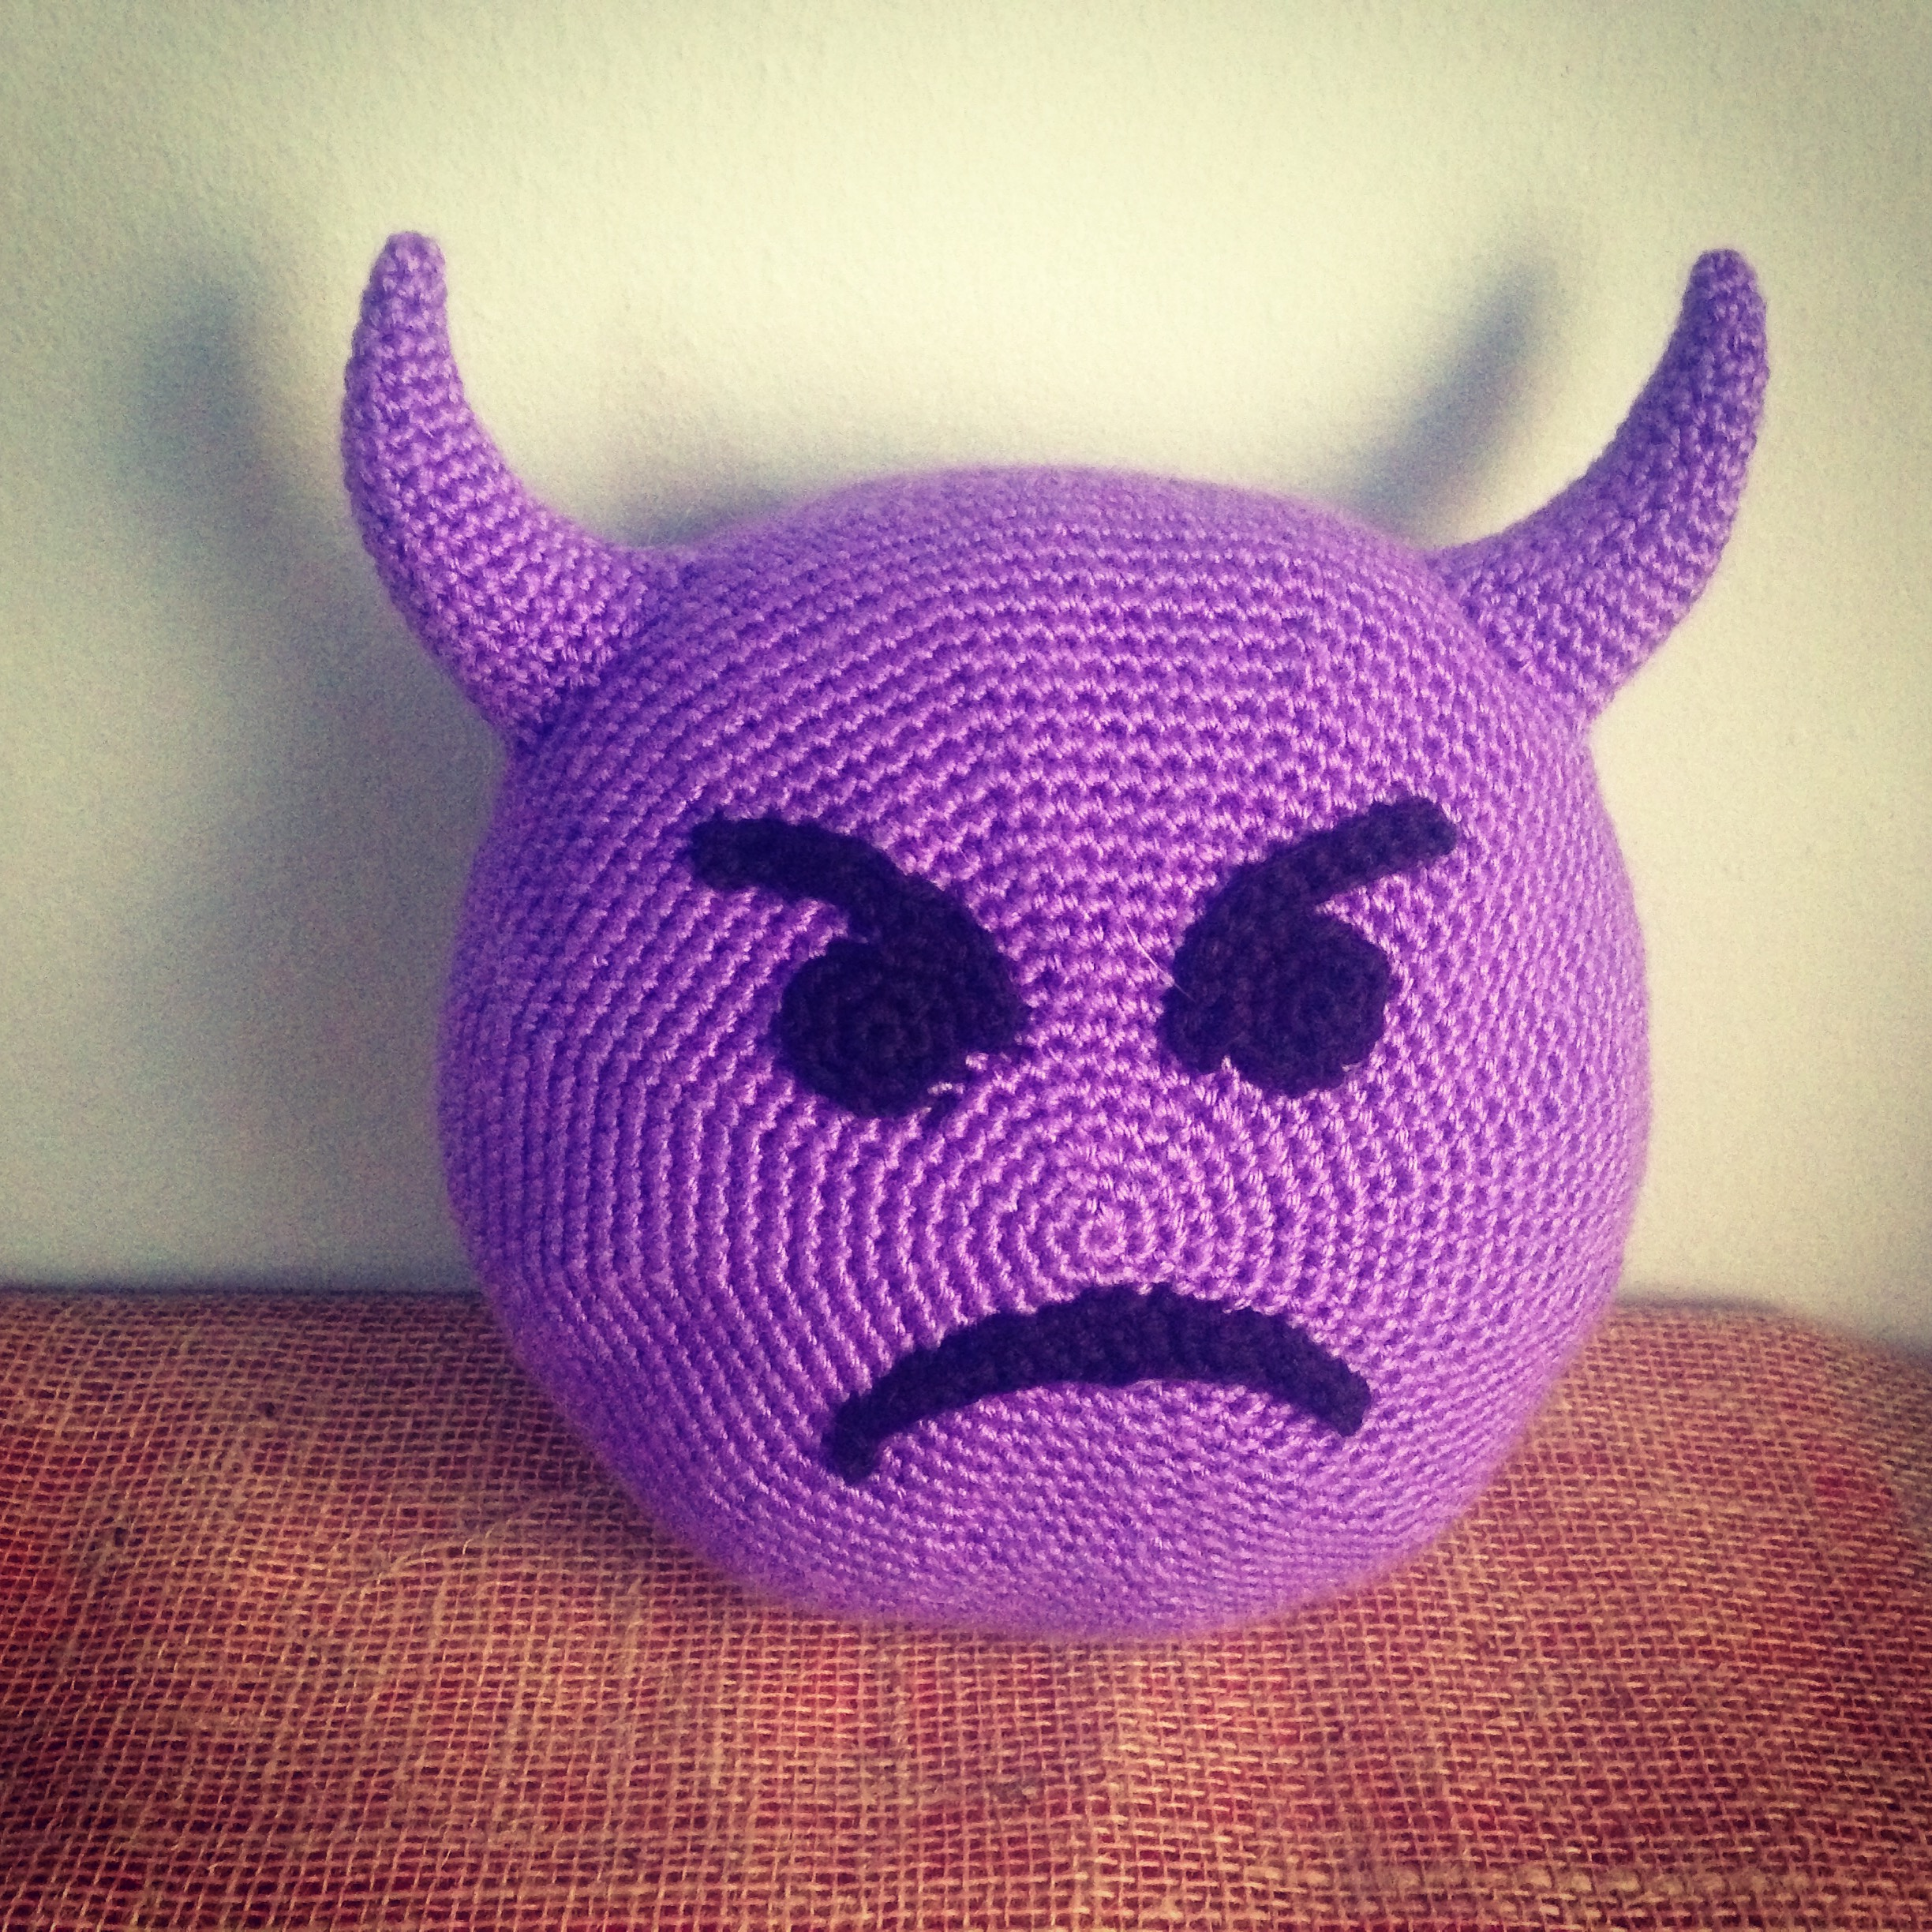 Crocheting Emoji : My husband won. (not completely, he wanted the poop emoji).